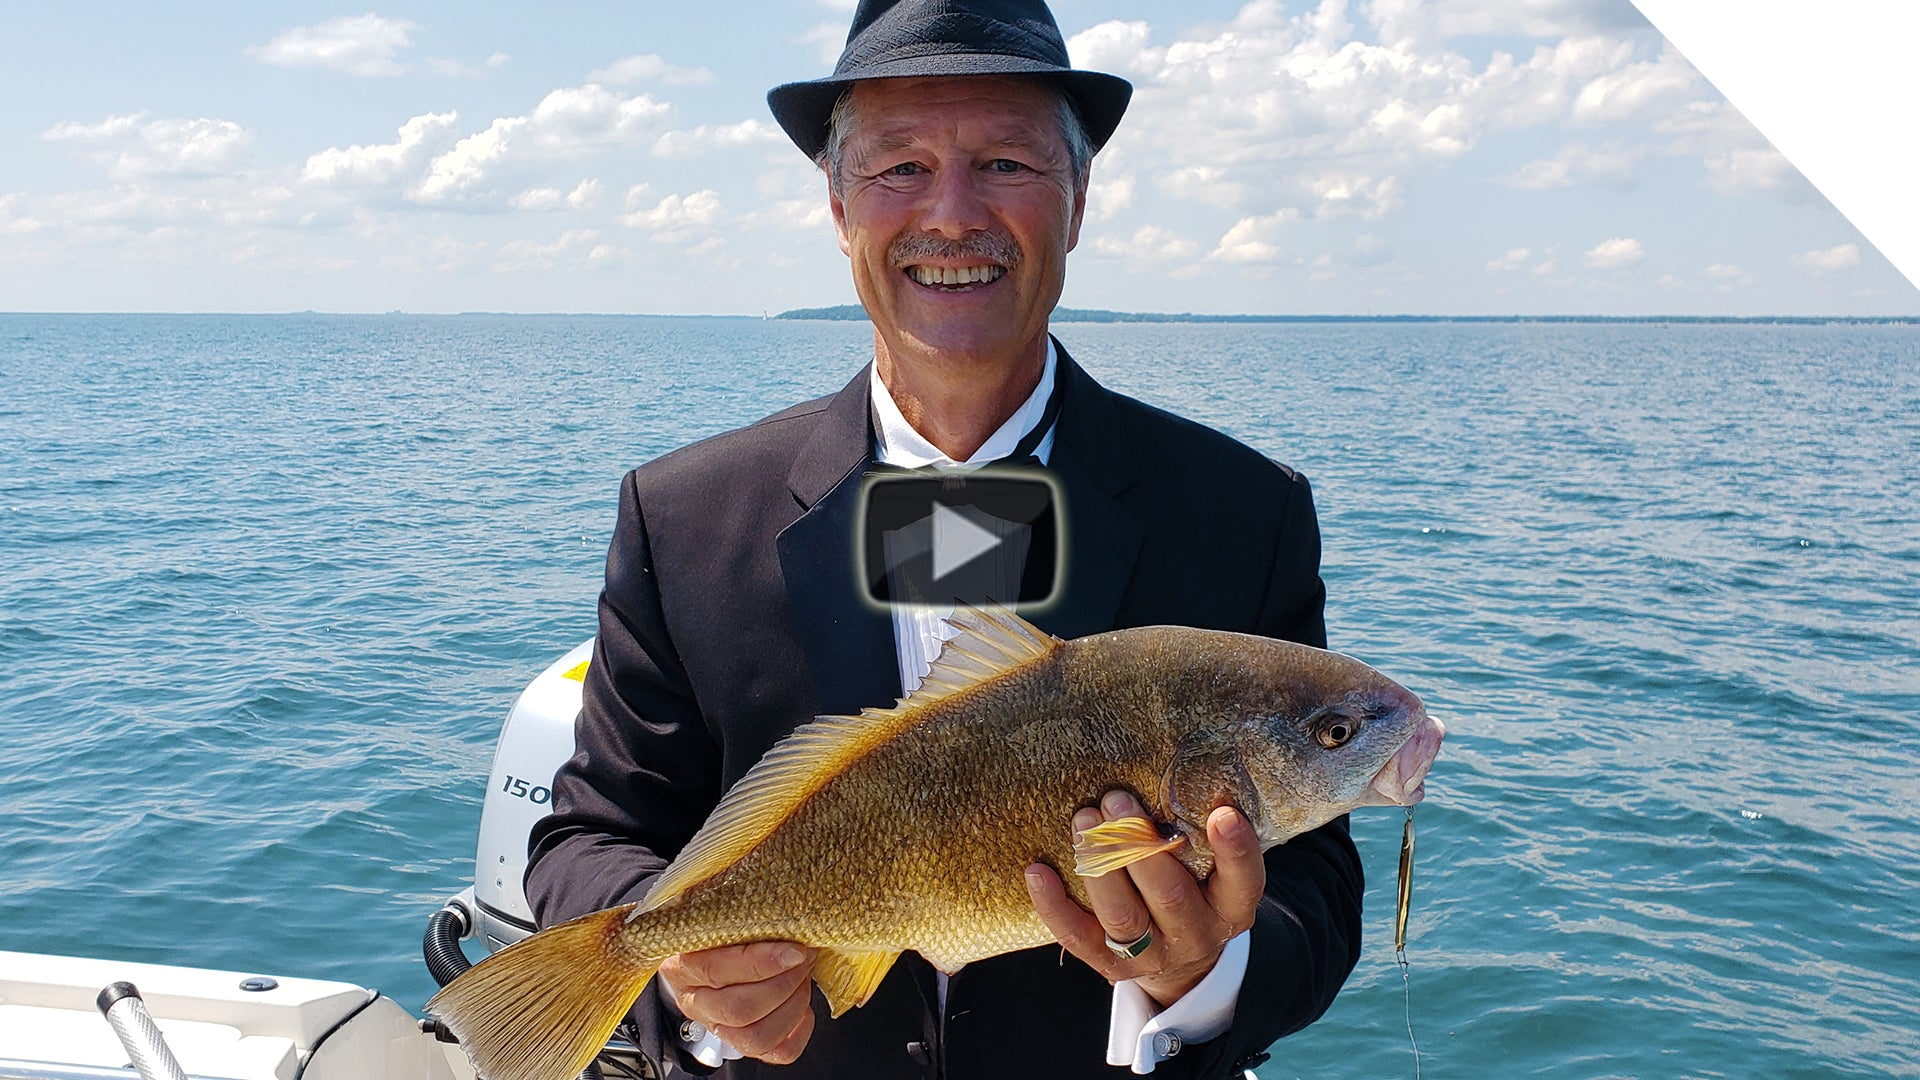 100,000 Subscribers Tuxedo Fishing Special!